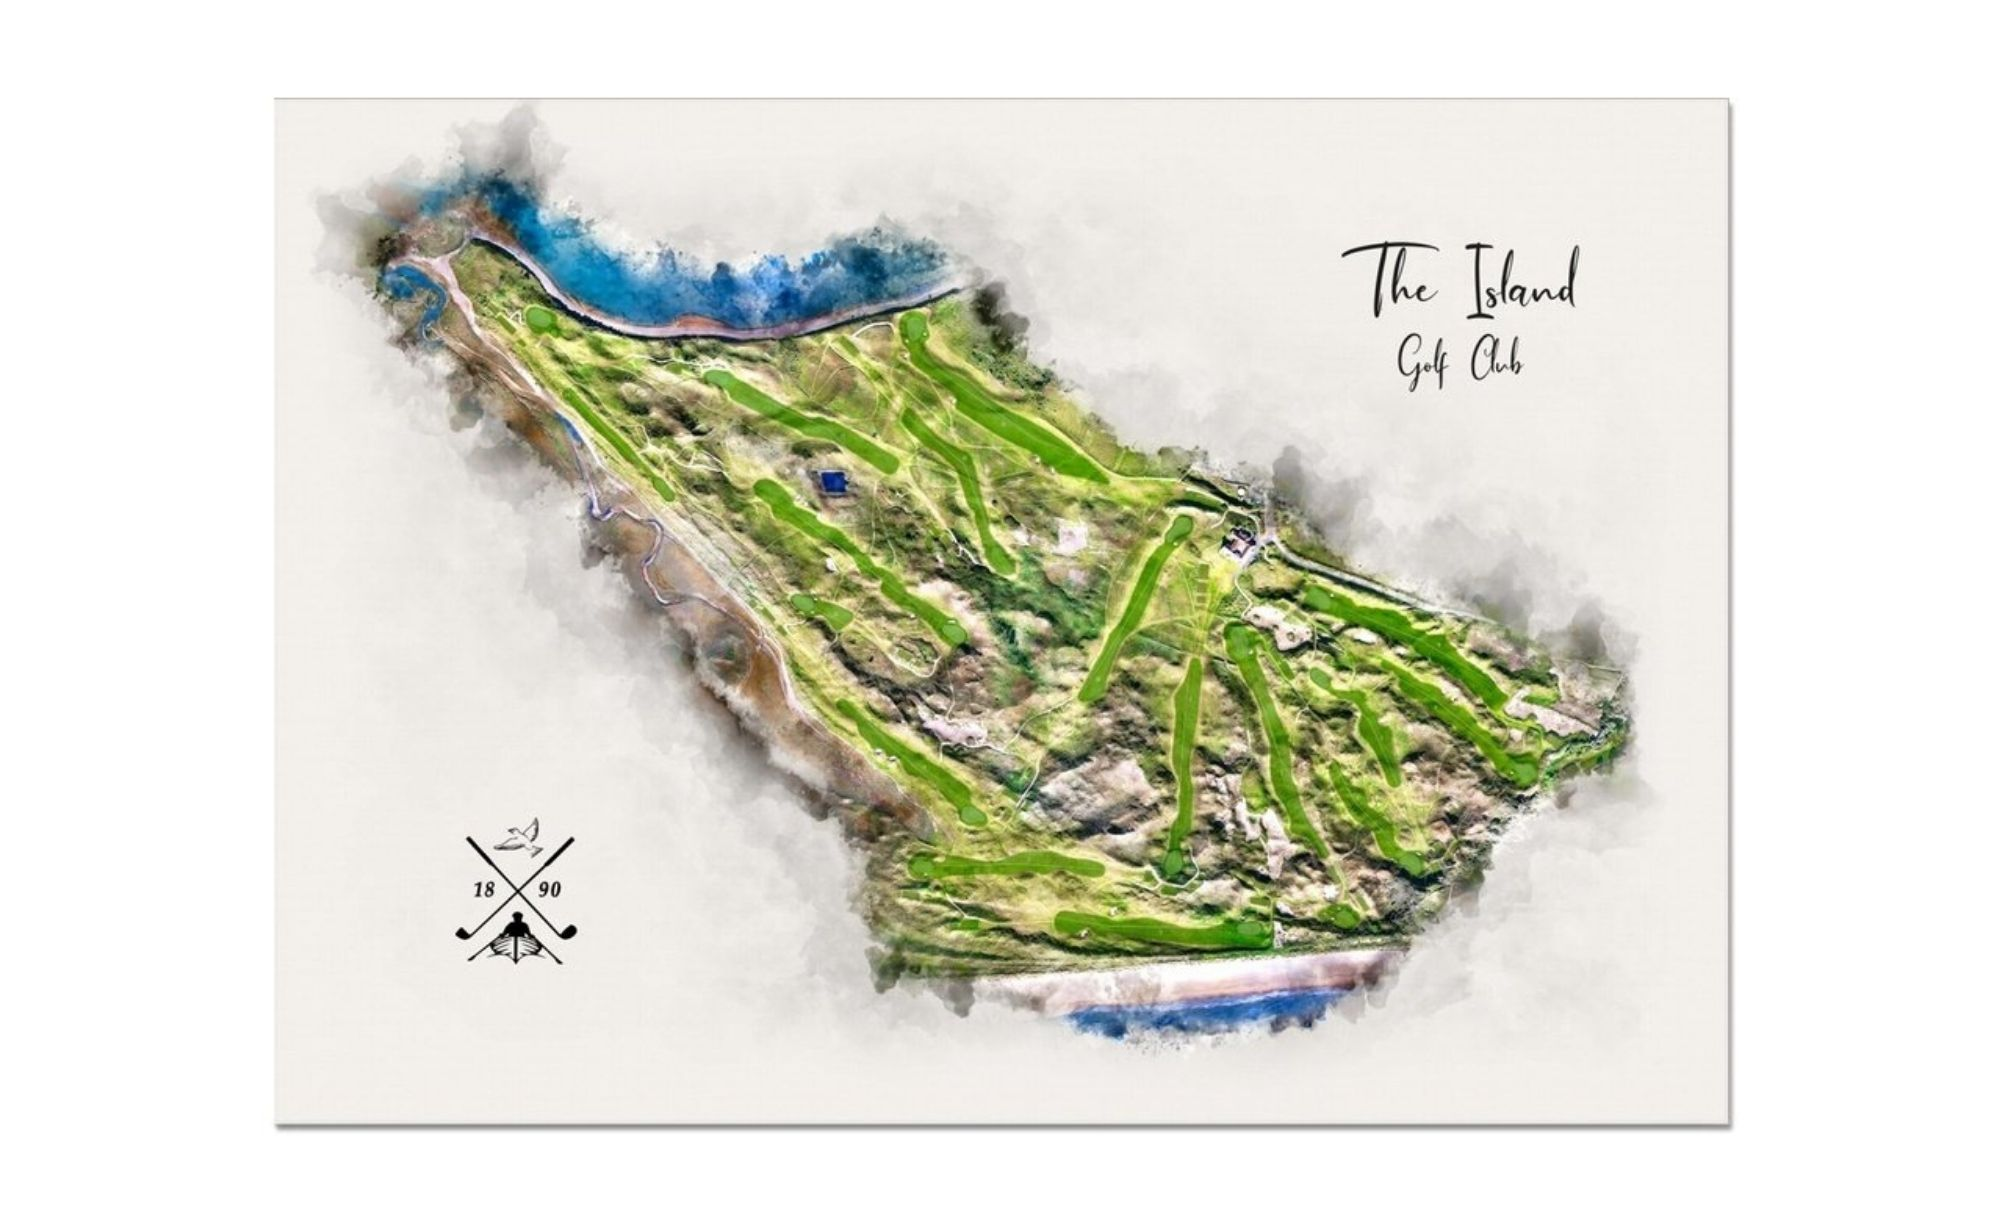 A piece modern golf art by Joe Mcdonnell of The Island Golf Club.